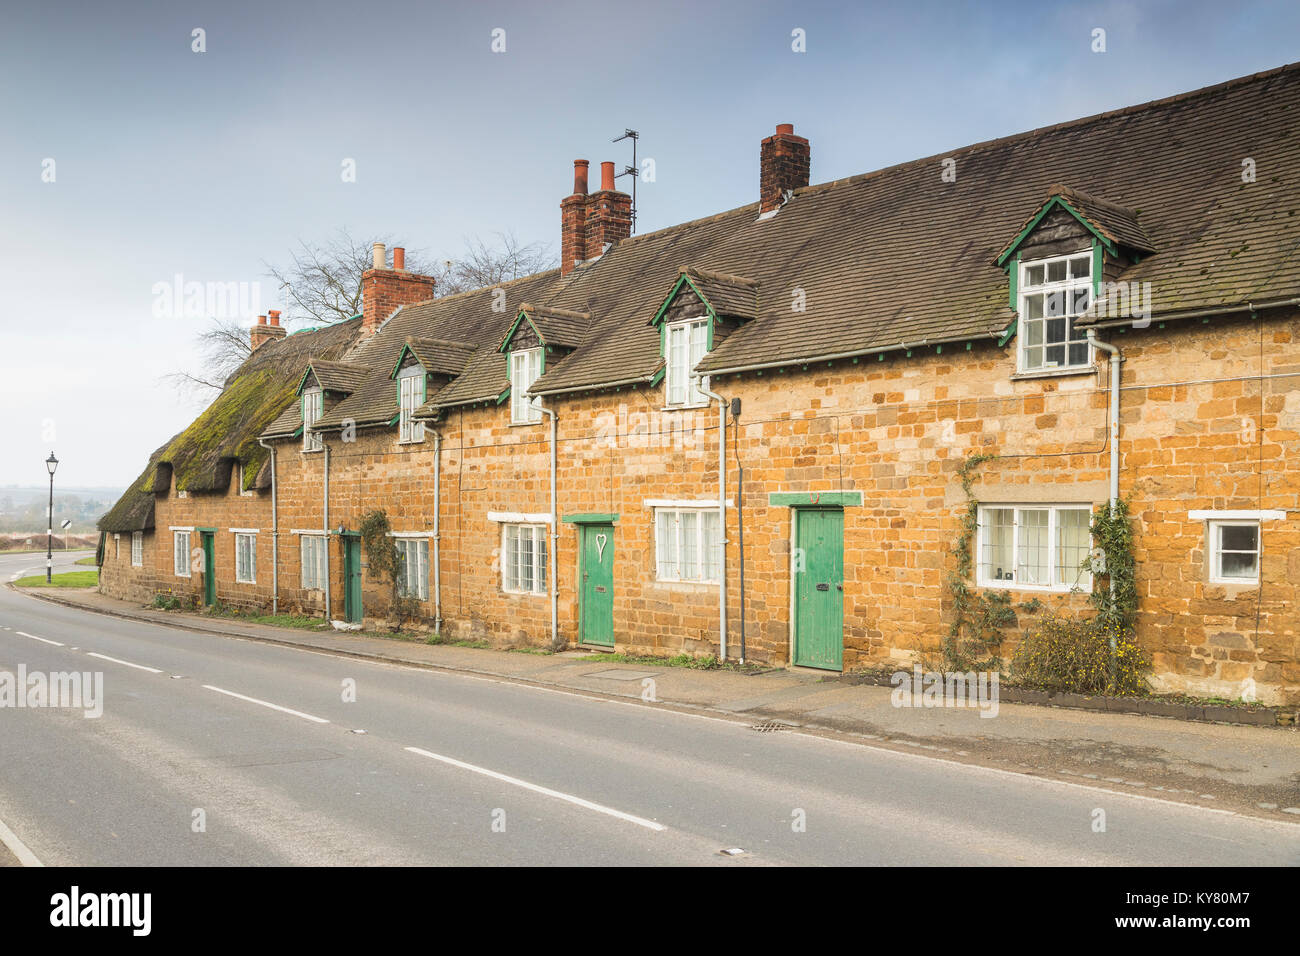 An image of a row of cottages in the small picturesque village of Rockingham, Northamptonshire, England, UK. - Stock Image